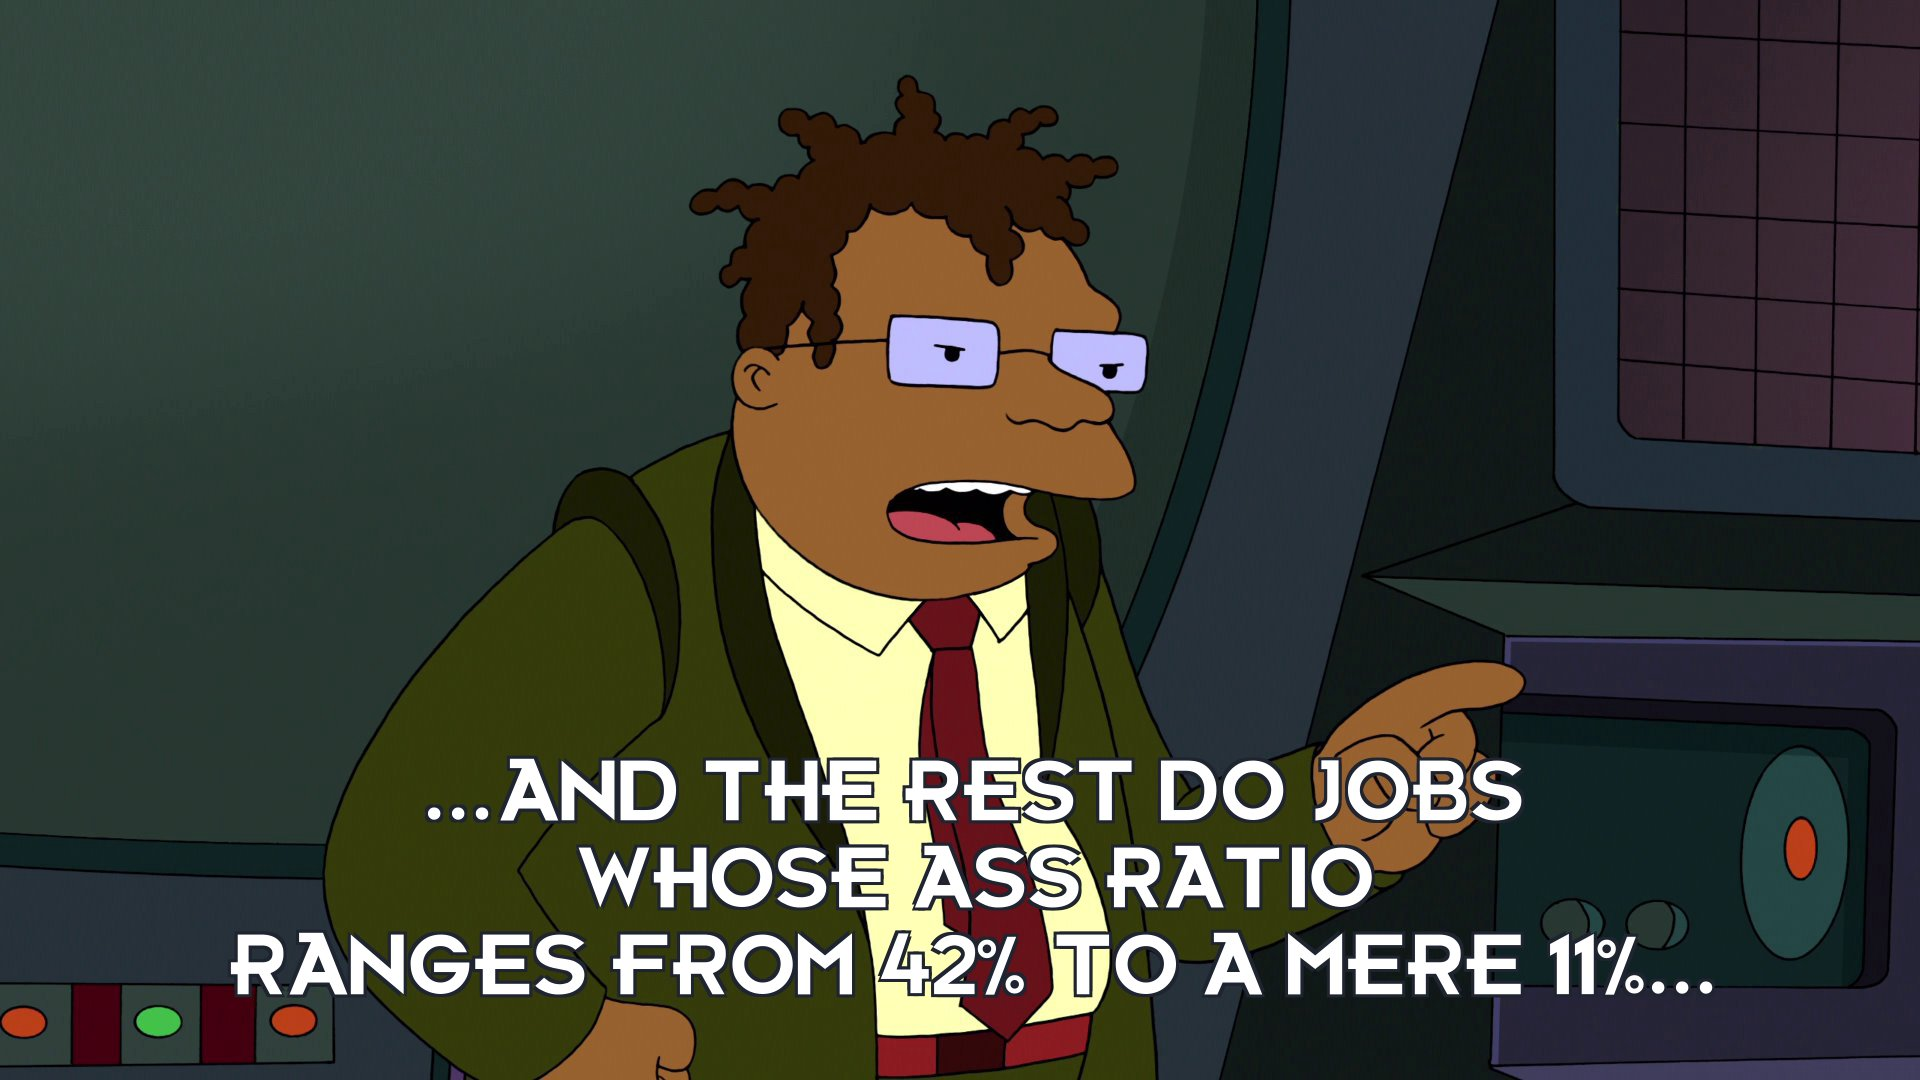 Hermes Conrad: ...and the rest do jobs whose ass ratio ranges from 42% to a mere 11%...